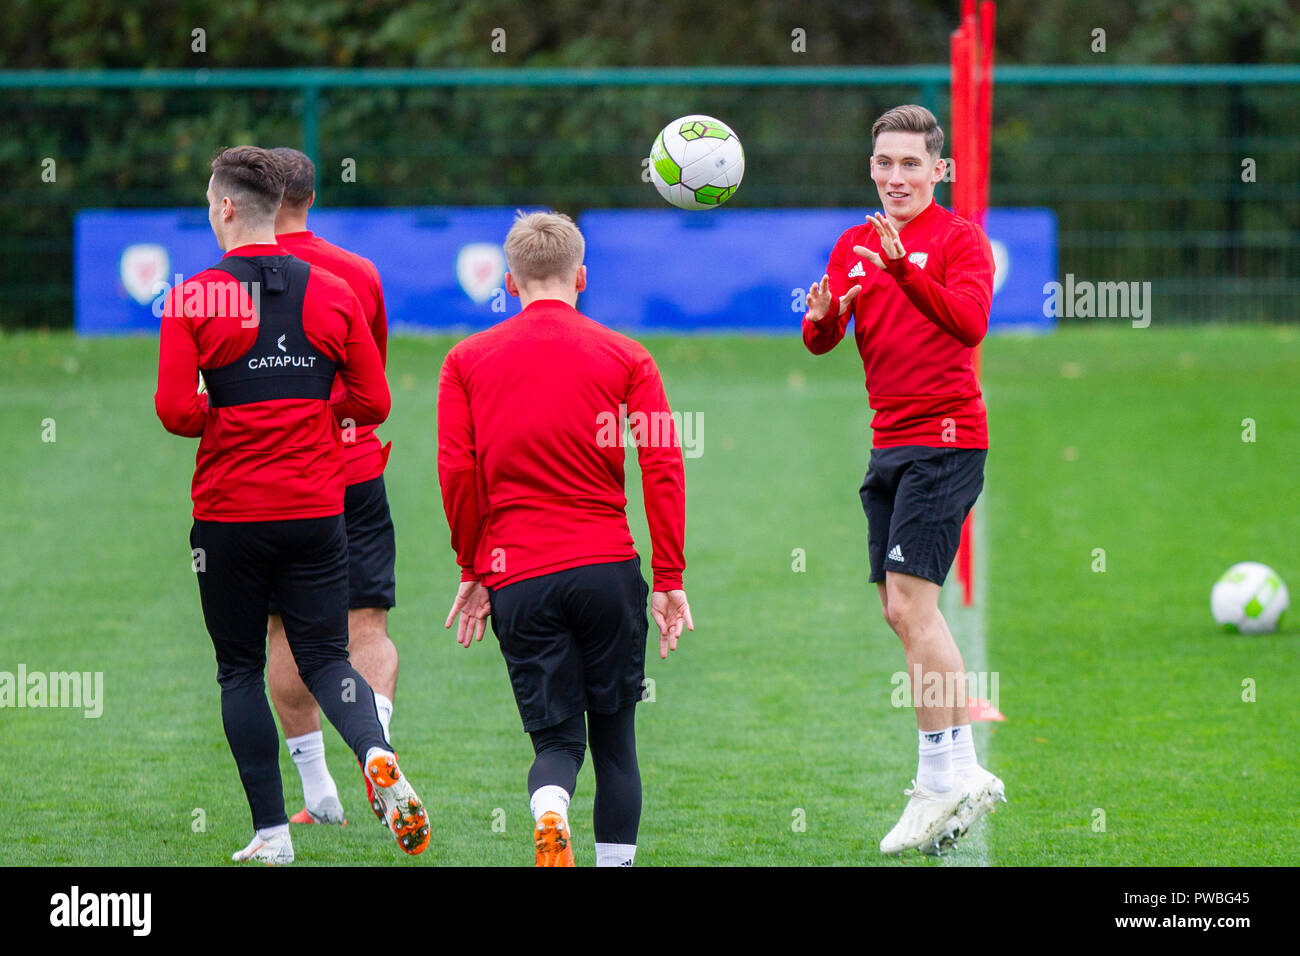 befa2223fe71 Nations League A Stock Photos   Nations League A Stock Images - Alamy